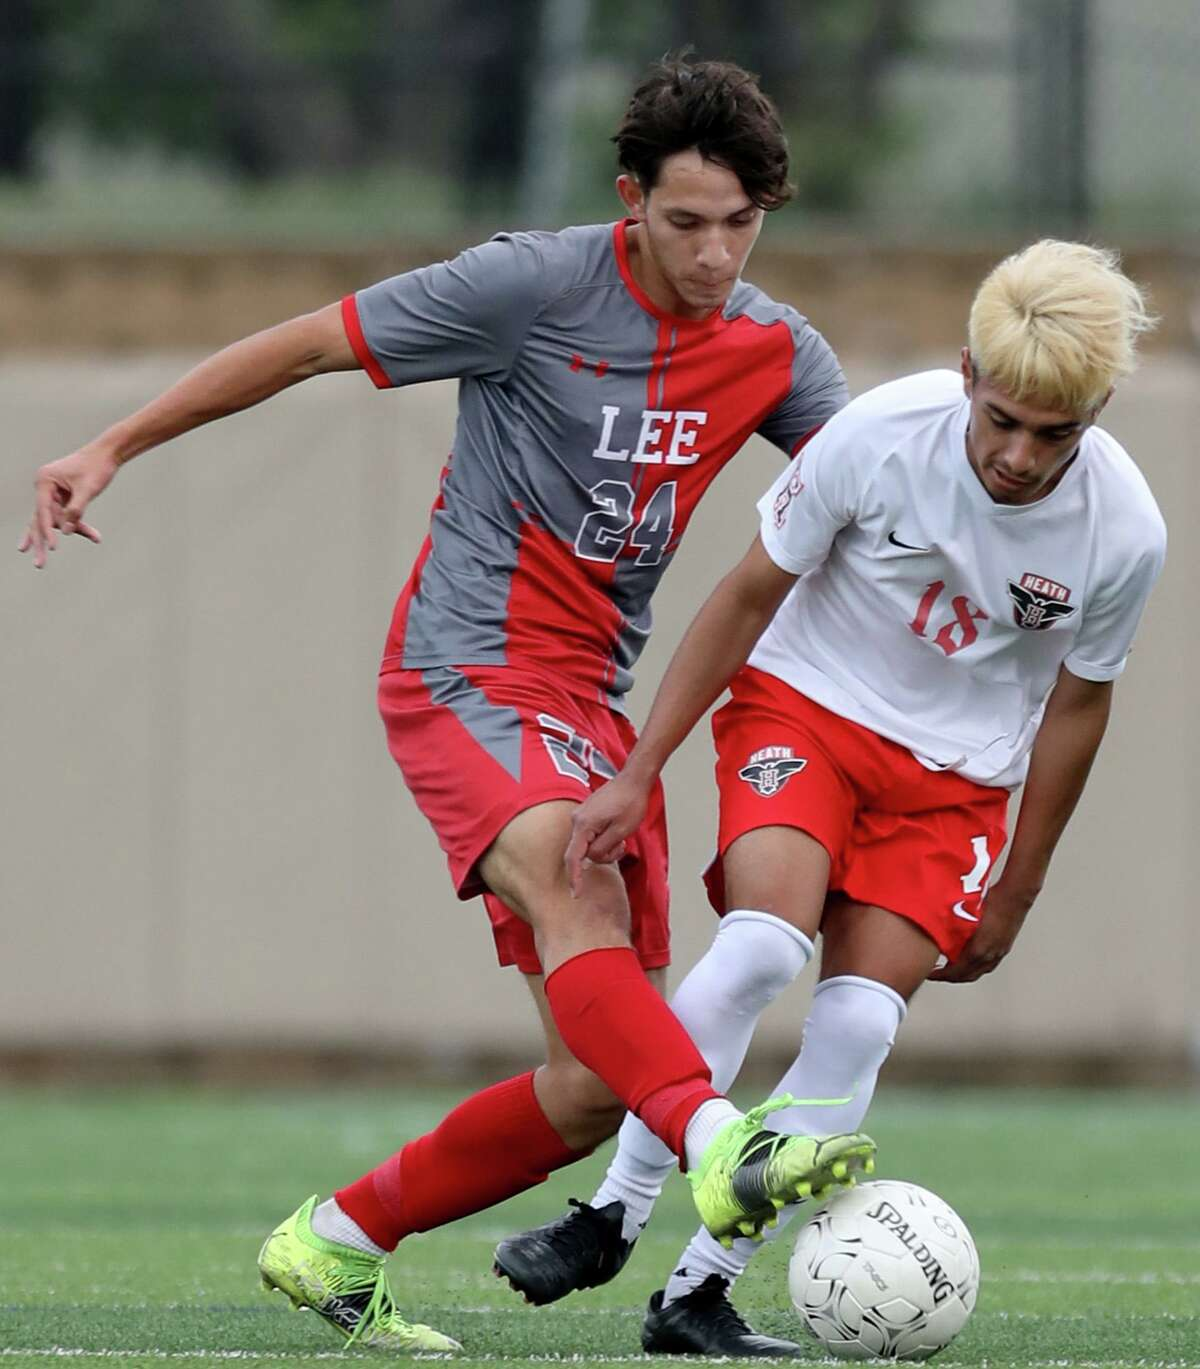 SA Lee's Julian Sanchez (24) and Rockwall-Heath's Luis Soto (18) struggle for control of the ball during their UIL 6A boys State championship soccer game at Birkelbach Field on April 17, 2021 in Georgetown, Texas.